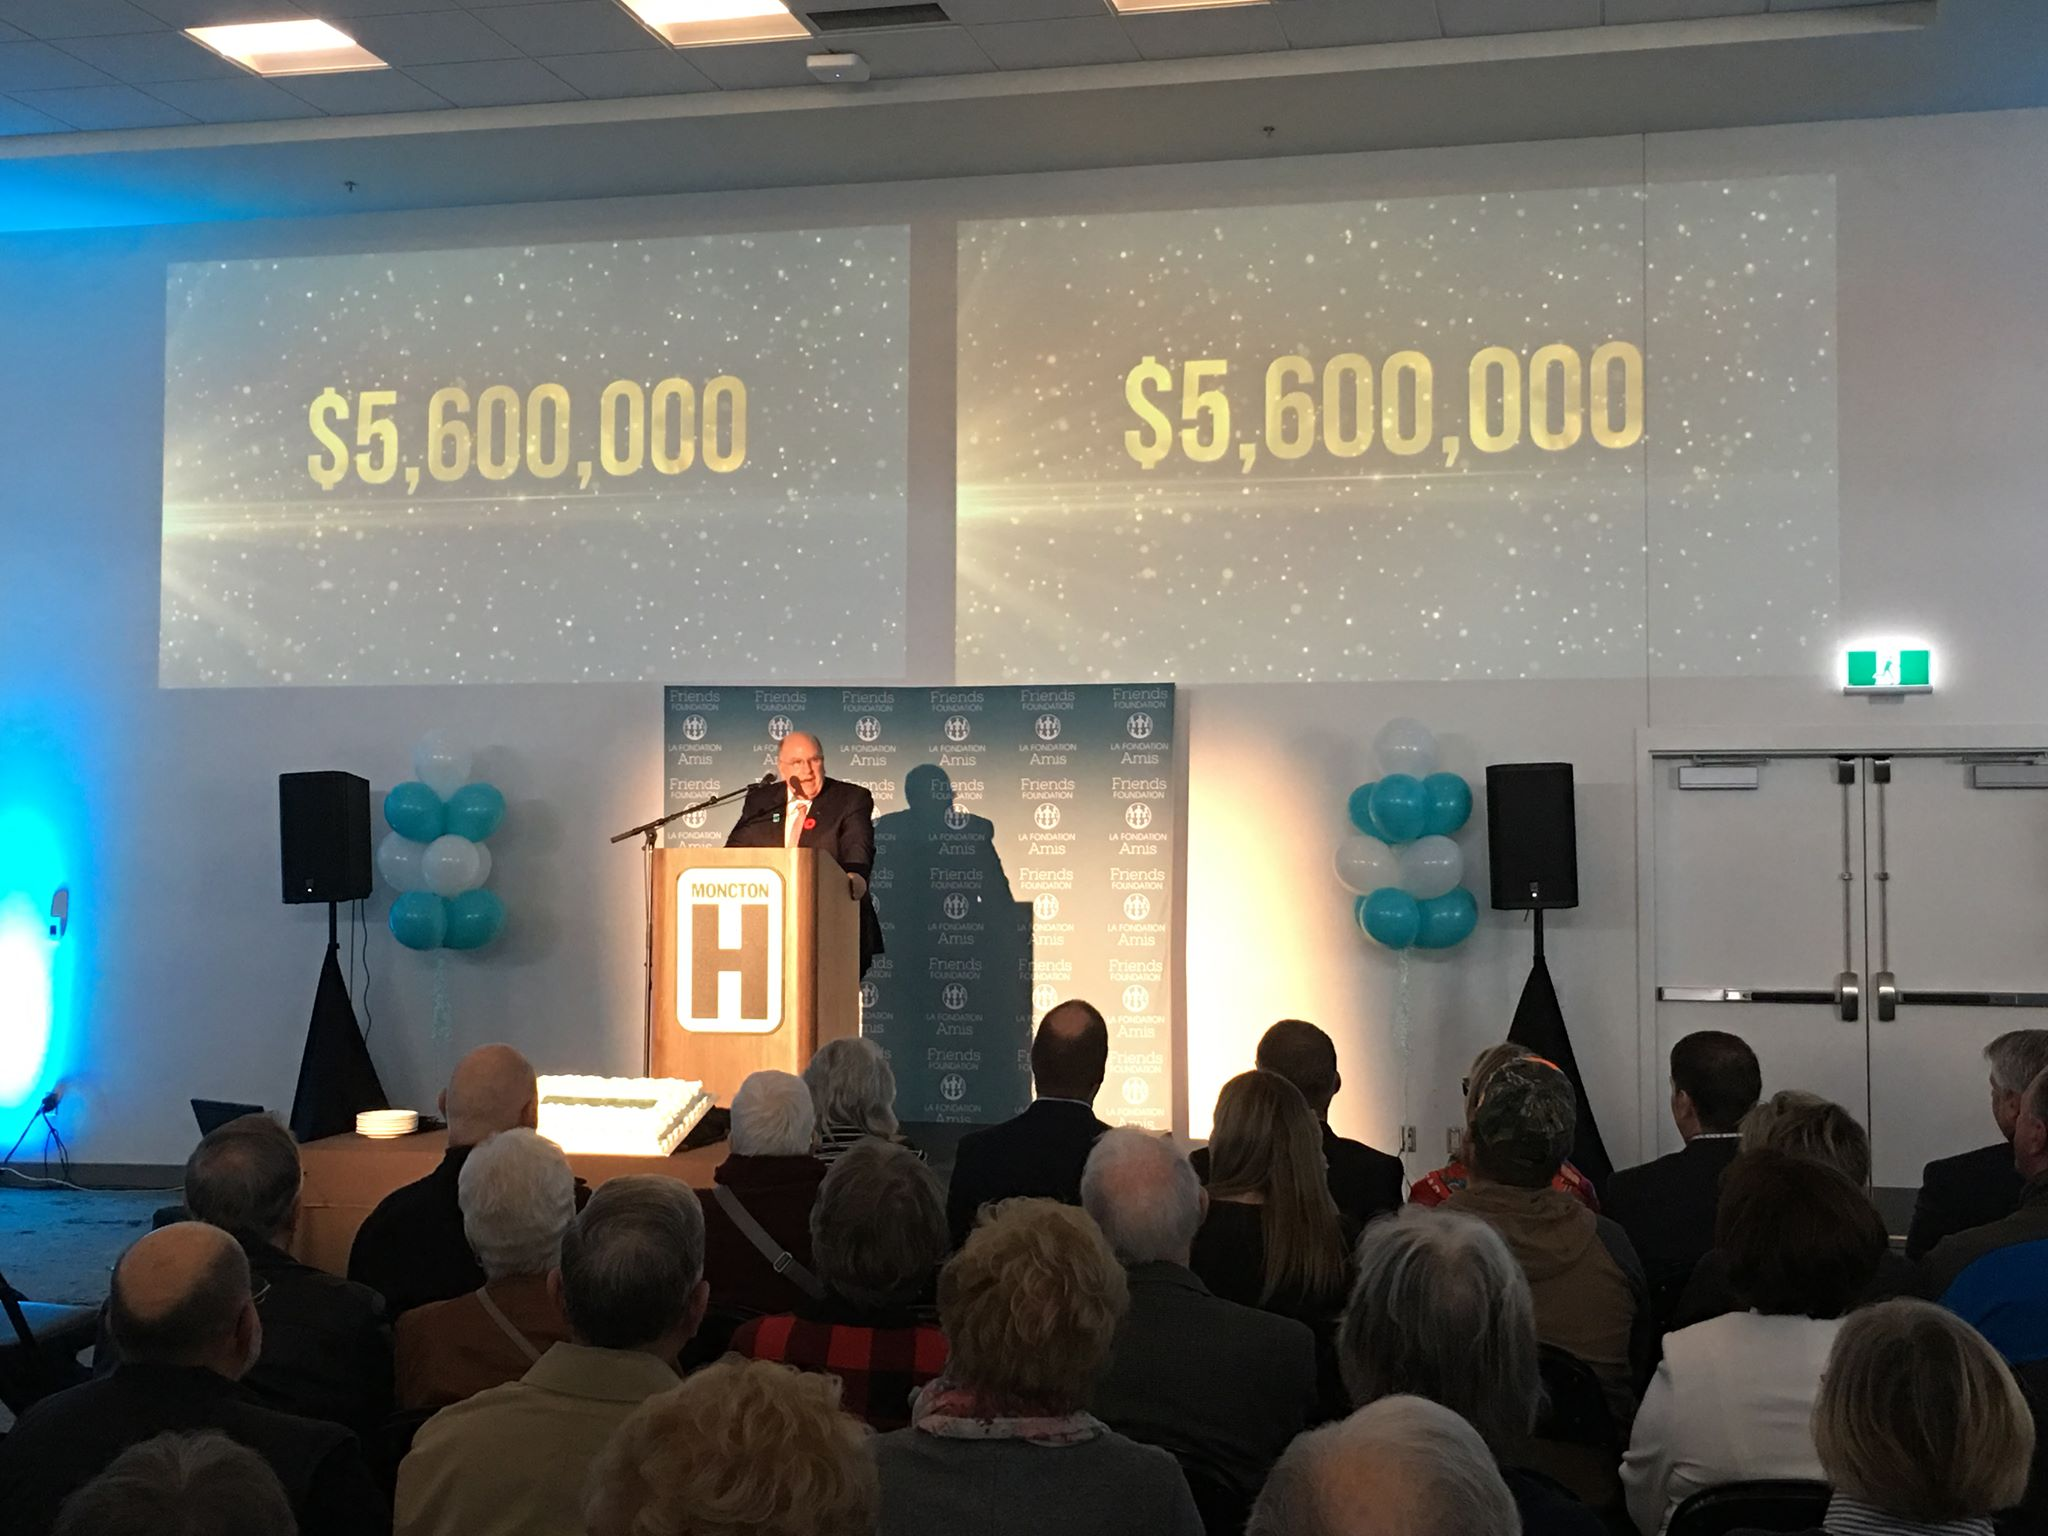 Moncton Hospital Foundation Launches Most Ambitious Campaign Yet